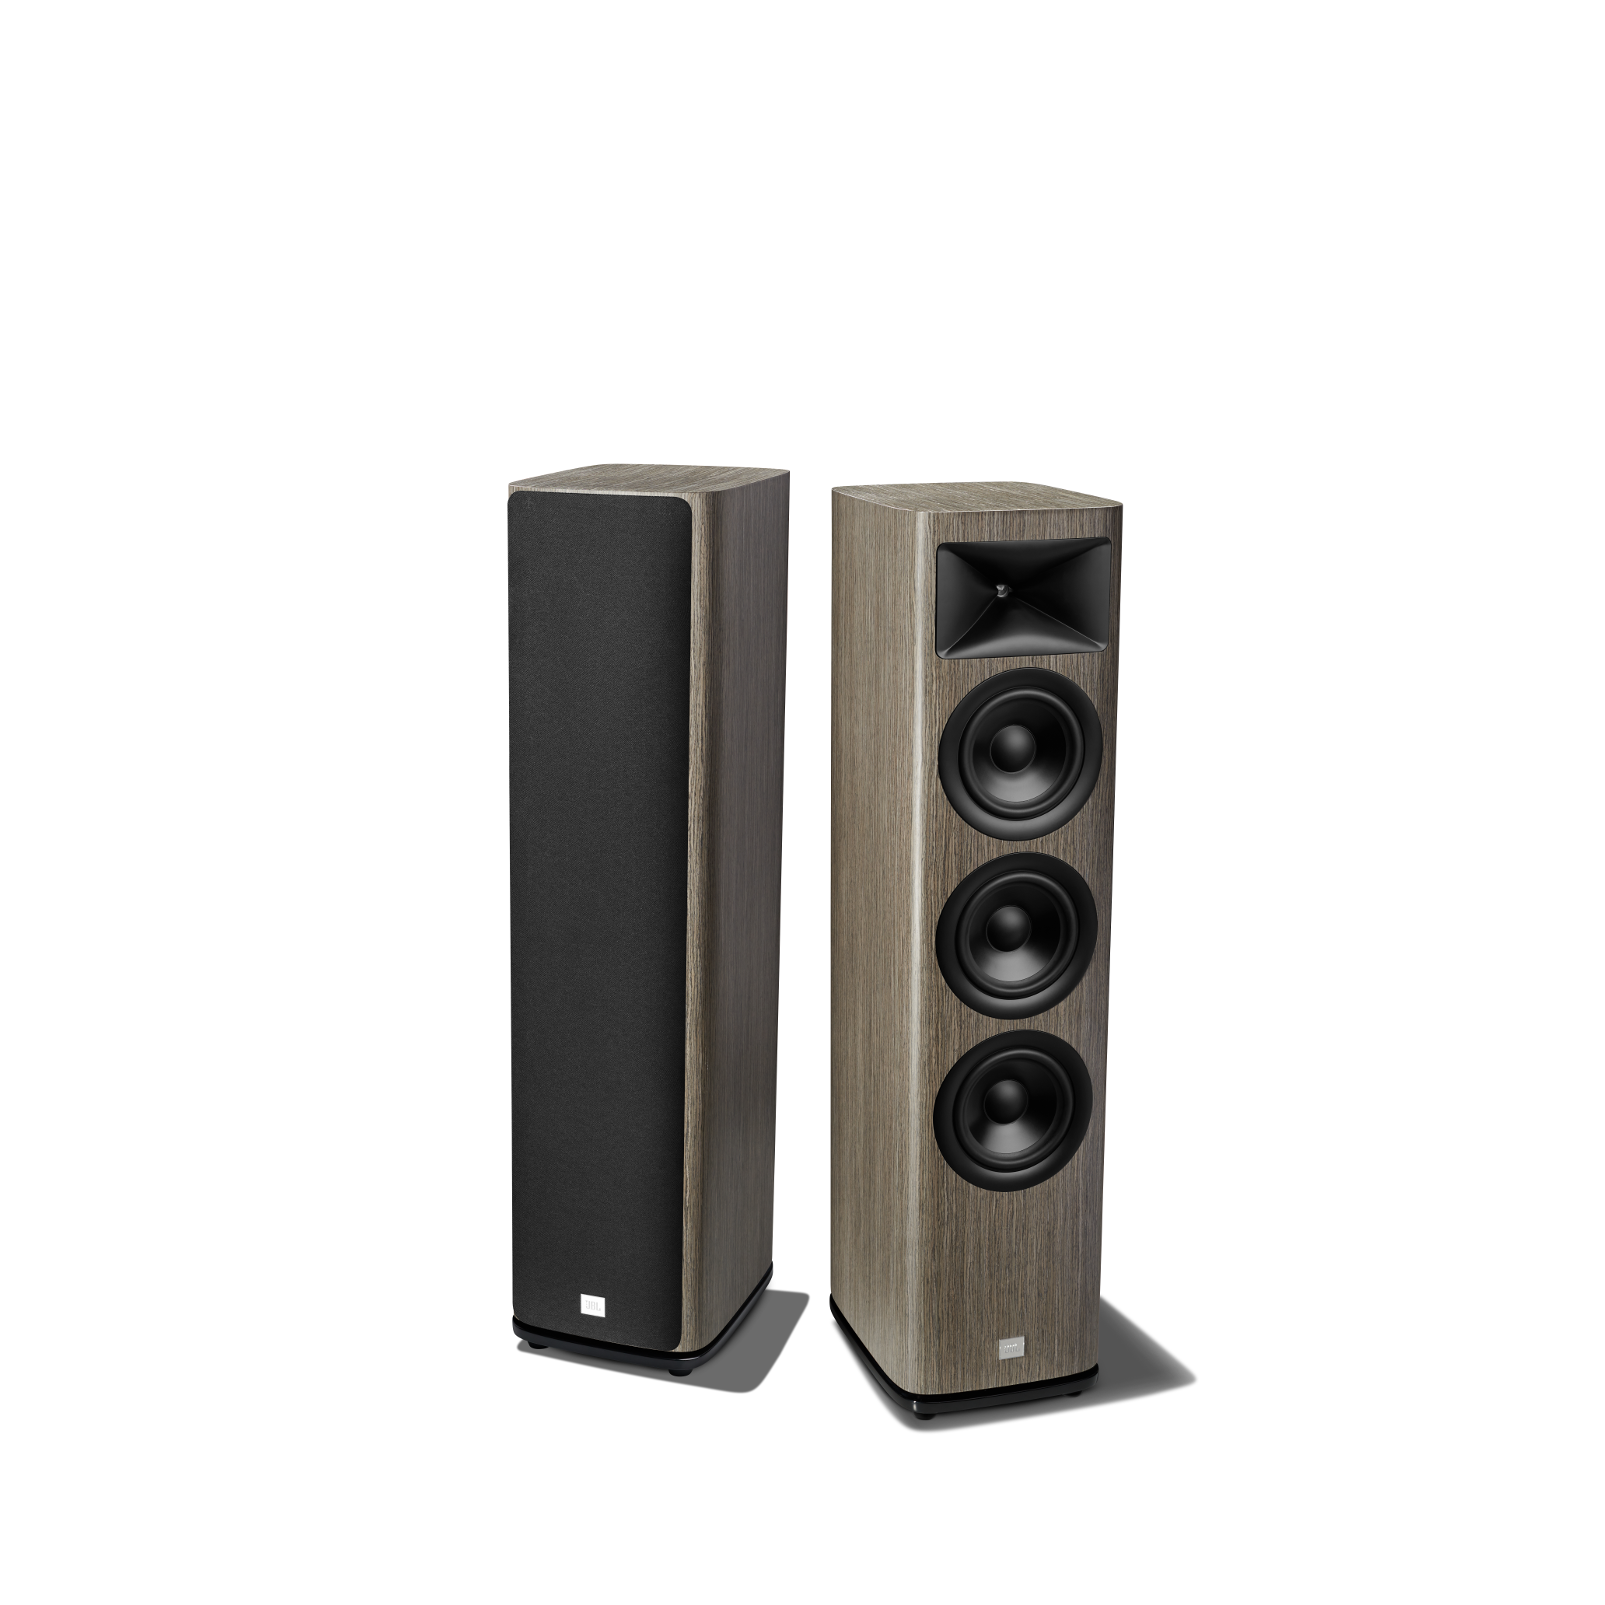 HDI-3600 - Grey Oak - 2 ½-way Triple 6.5-inch (165mm) Floorstanding Loudspeaker - Detailshot 1